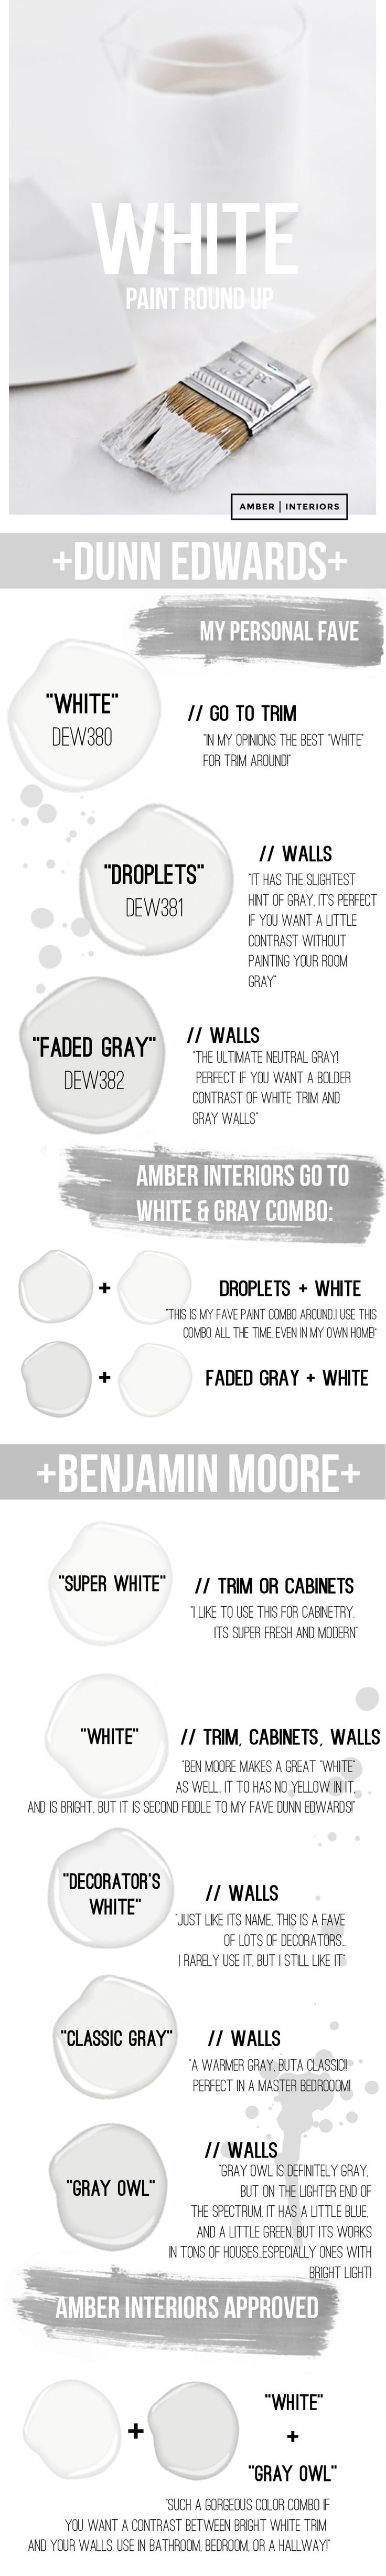 Amber Lewis white paint roundup